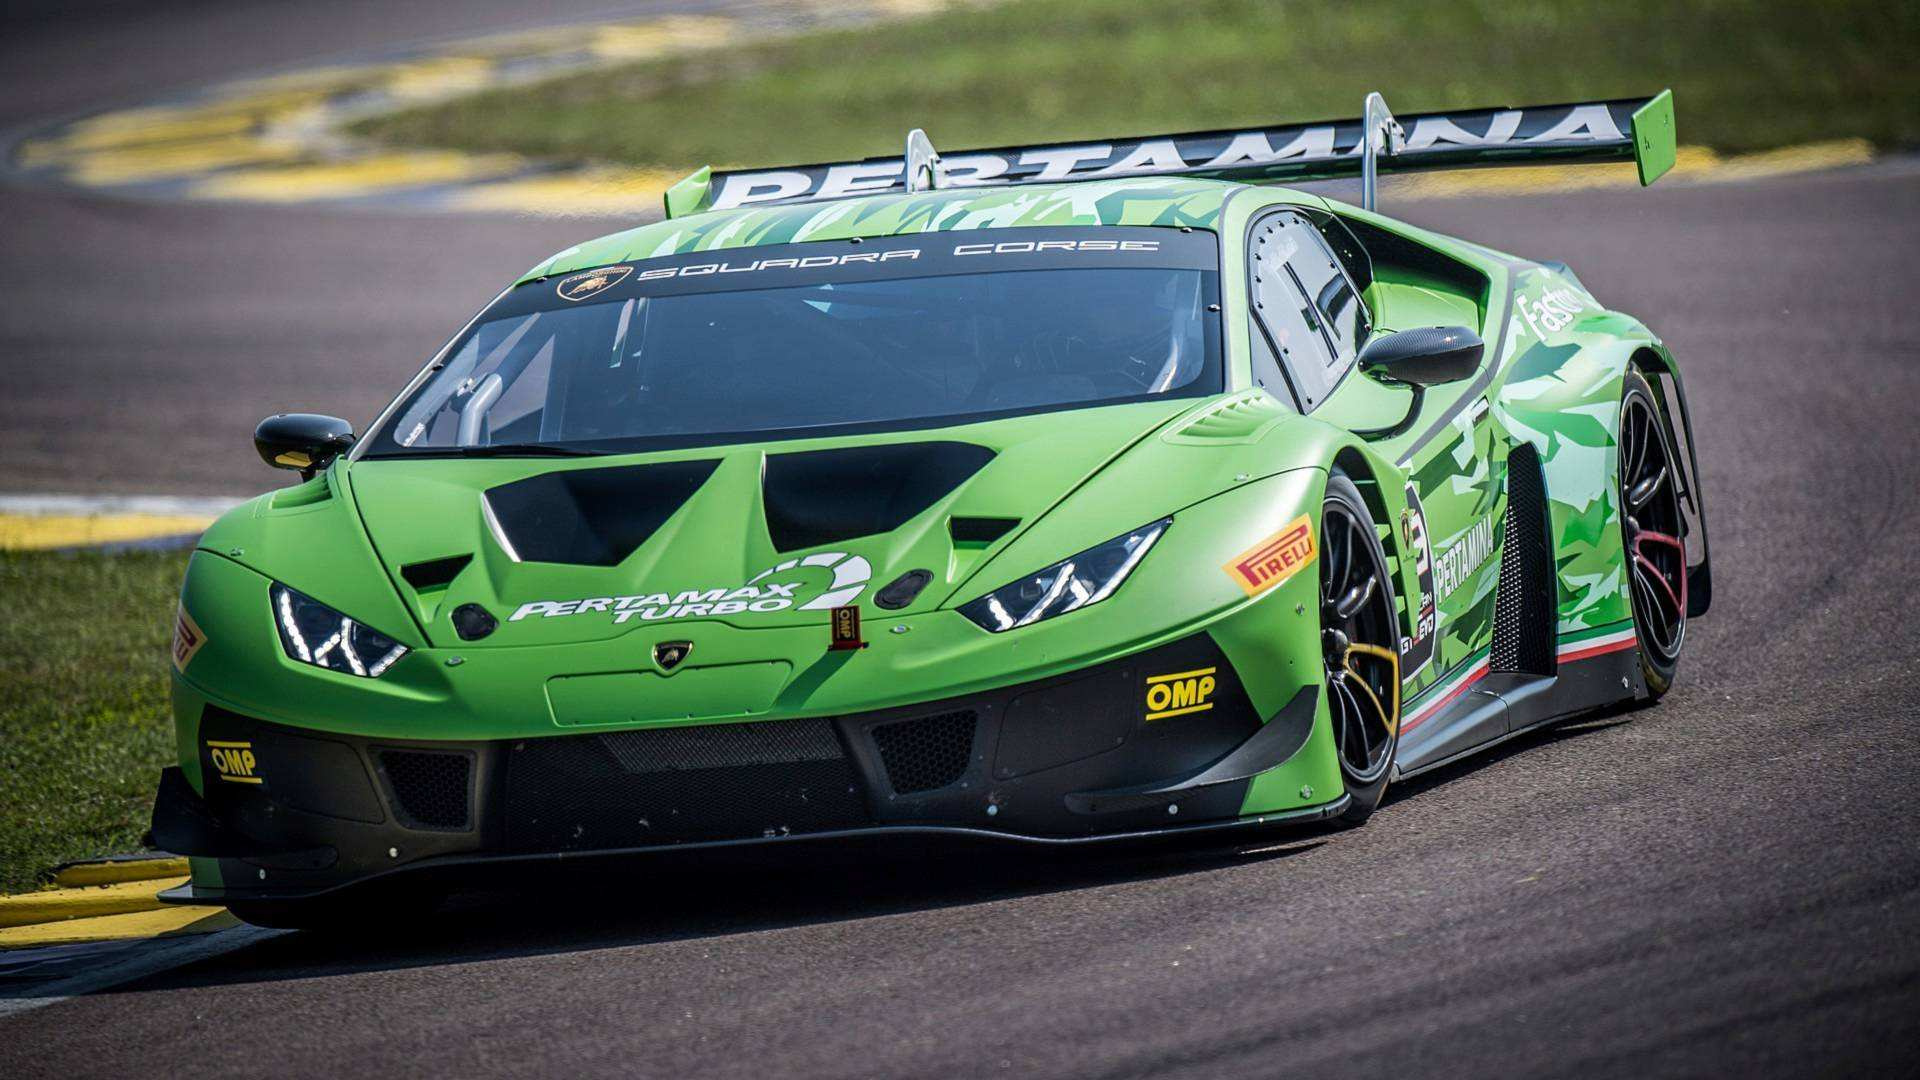 98 The 2019 Lamborghini Huracan Gt3 Evo Price And Release Date